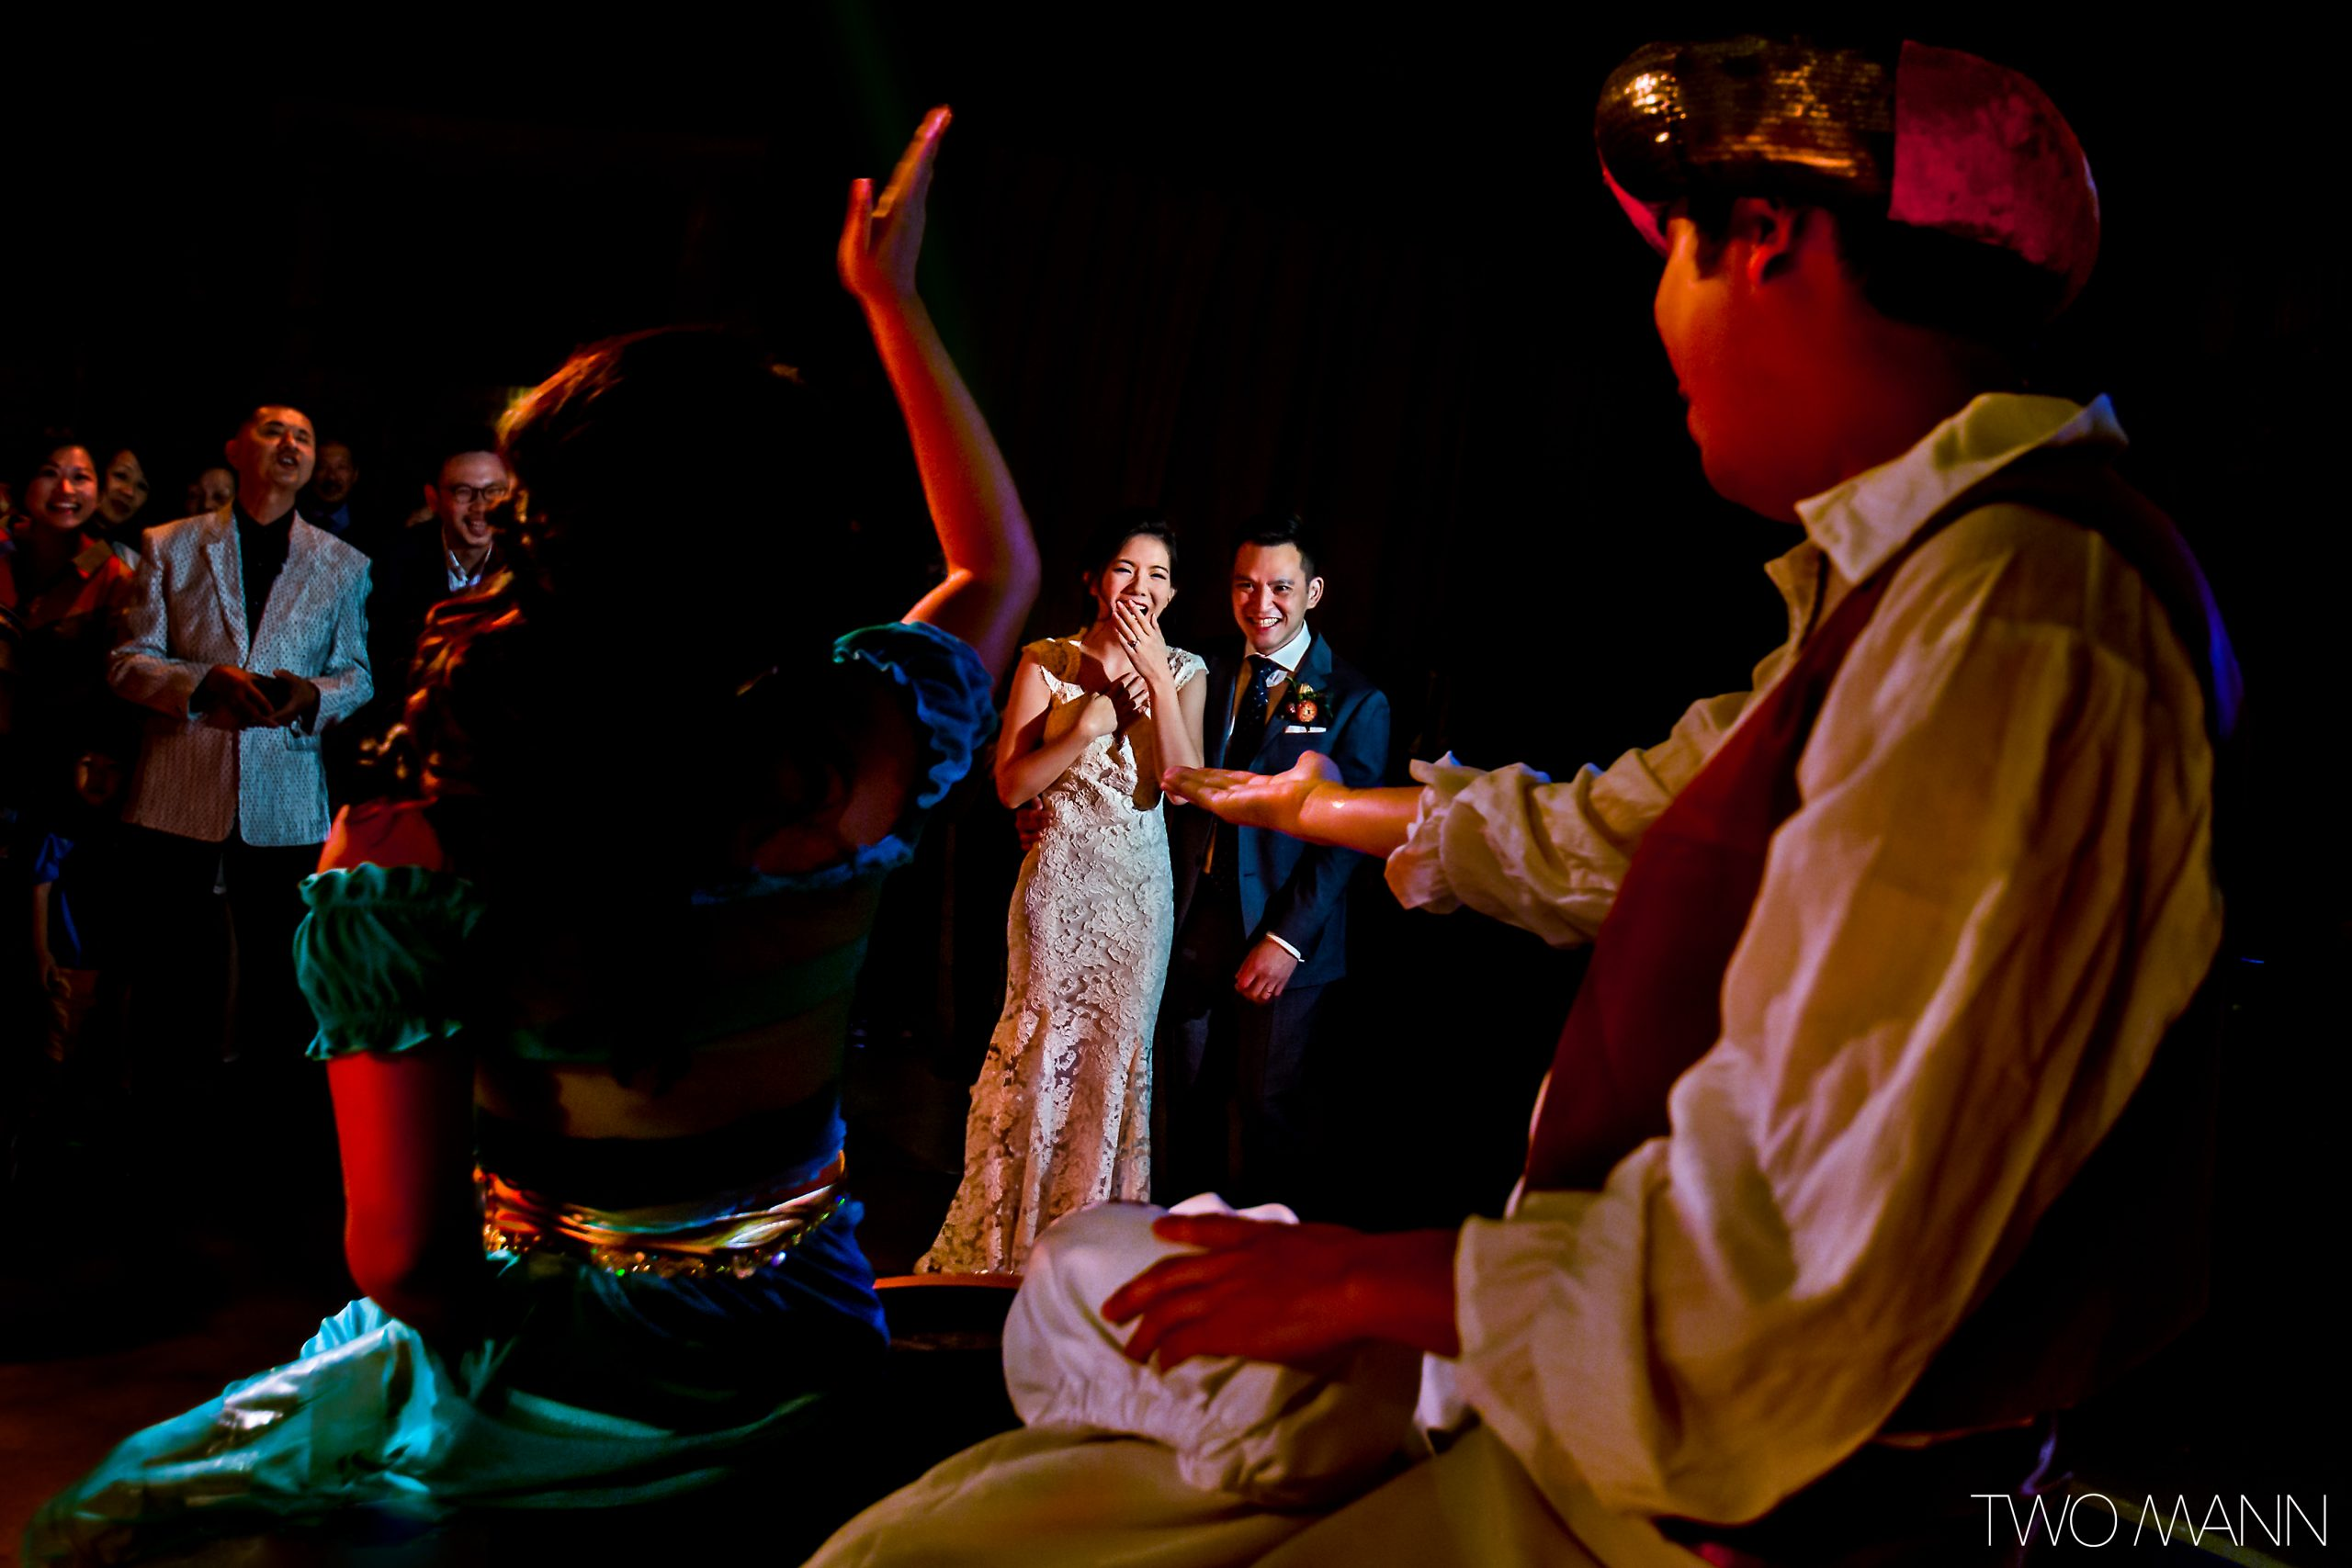 aladdin performance at wedding reception with bride and groom laughing